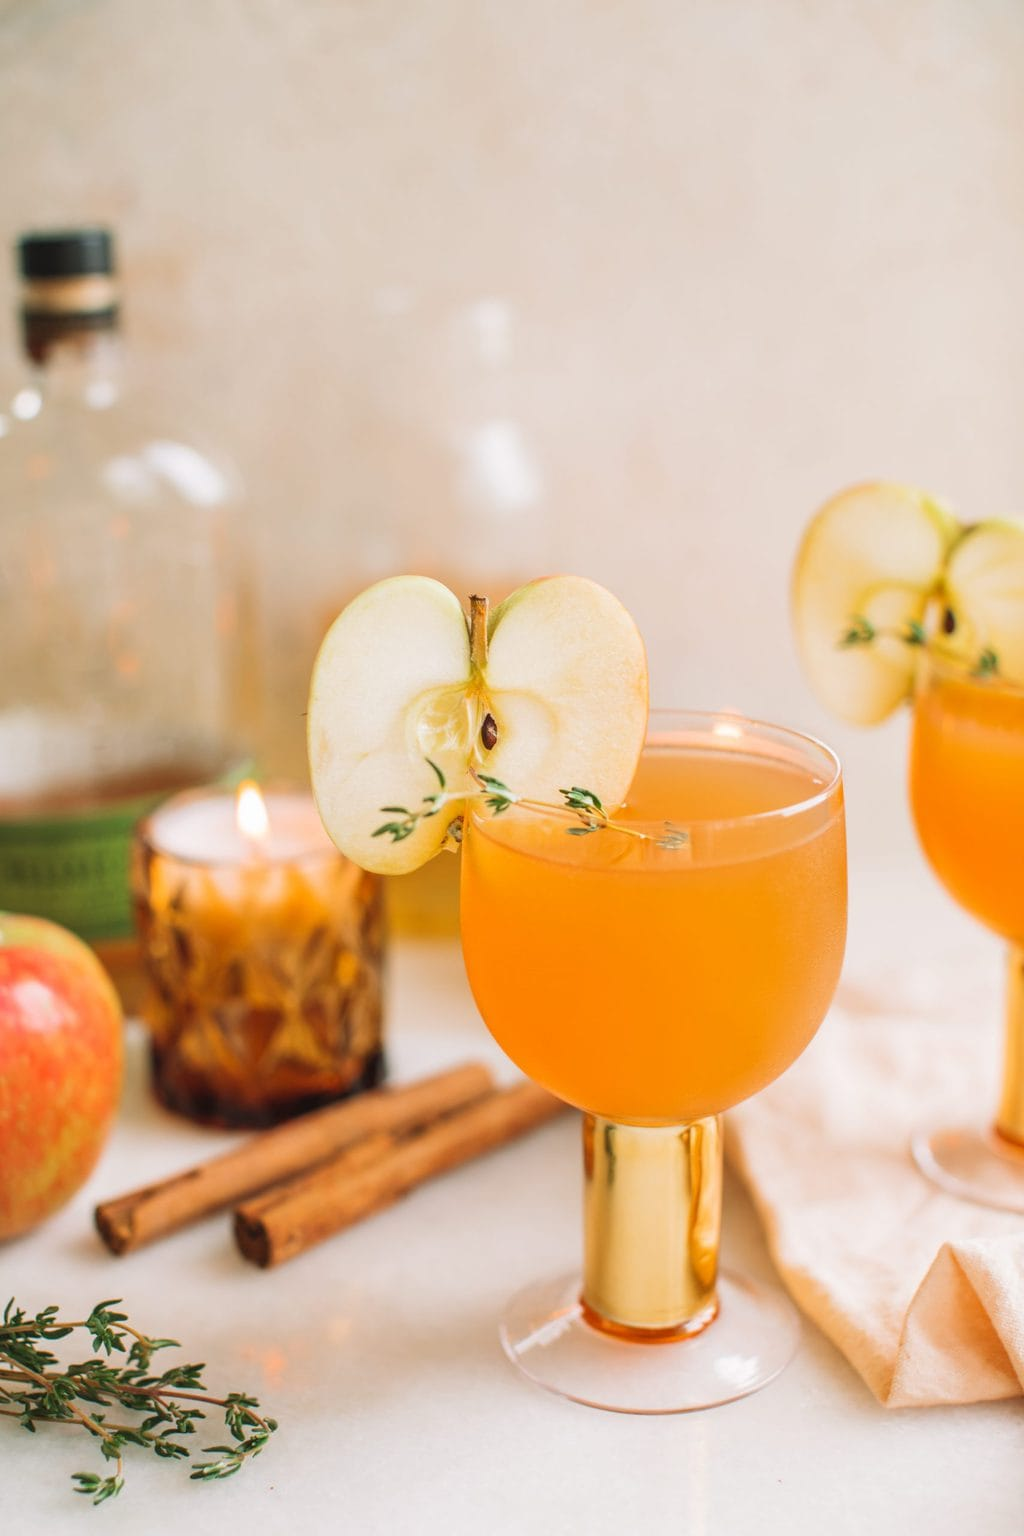 A glass cup with orange liquid and an apple slice garnish.